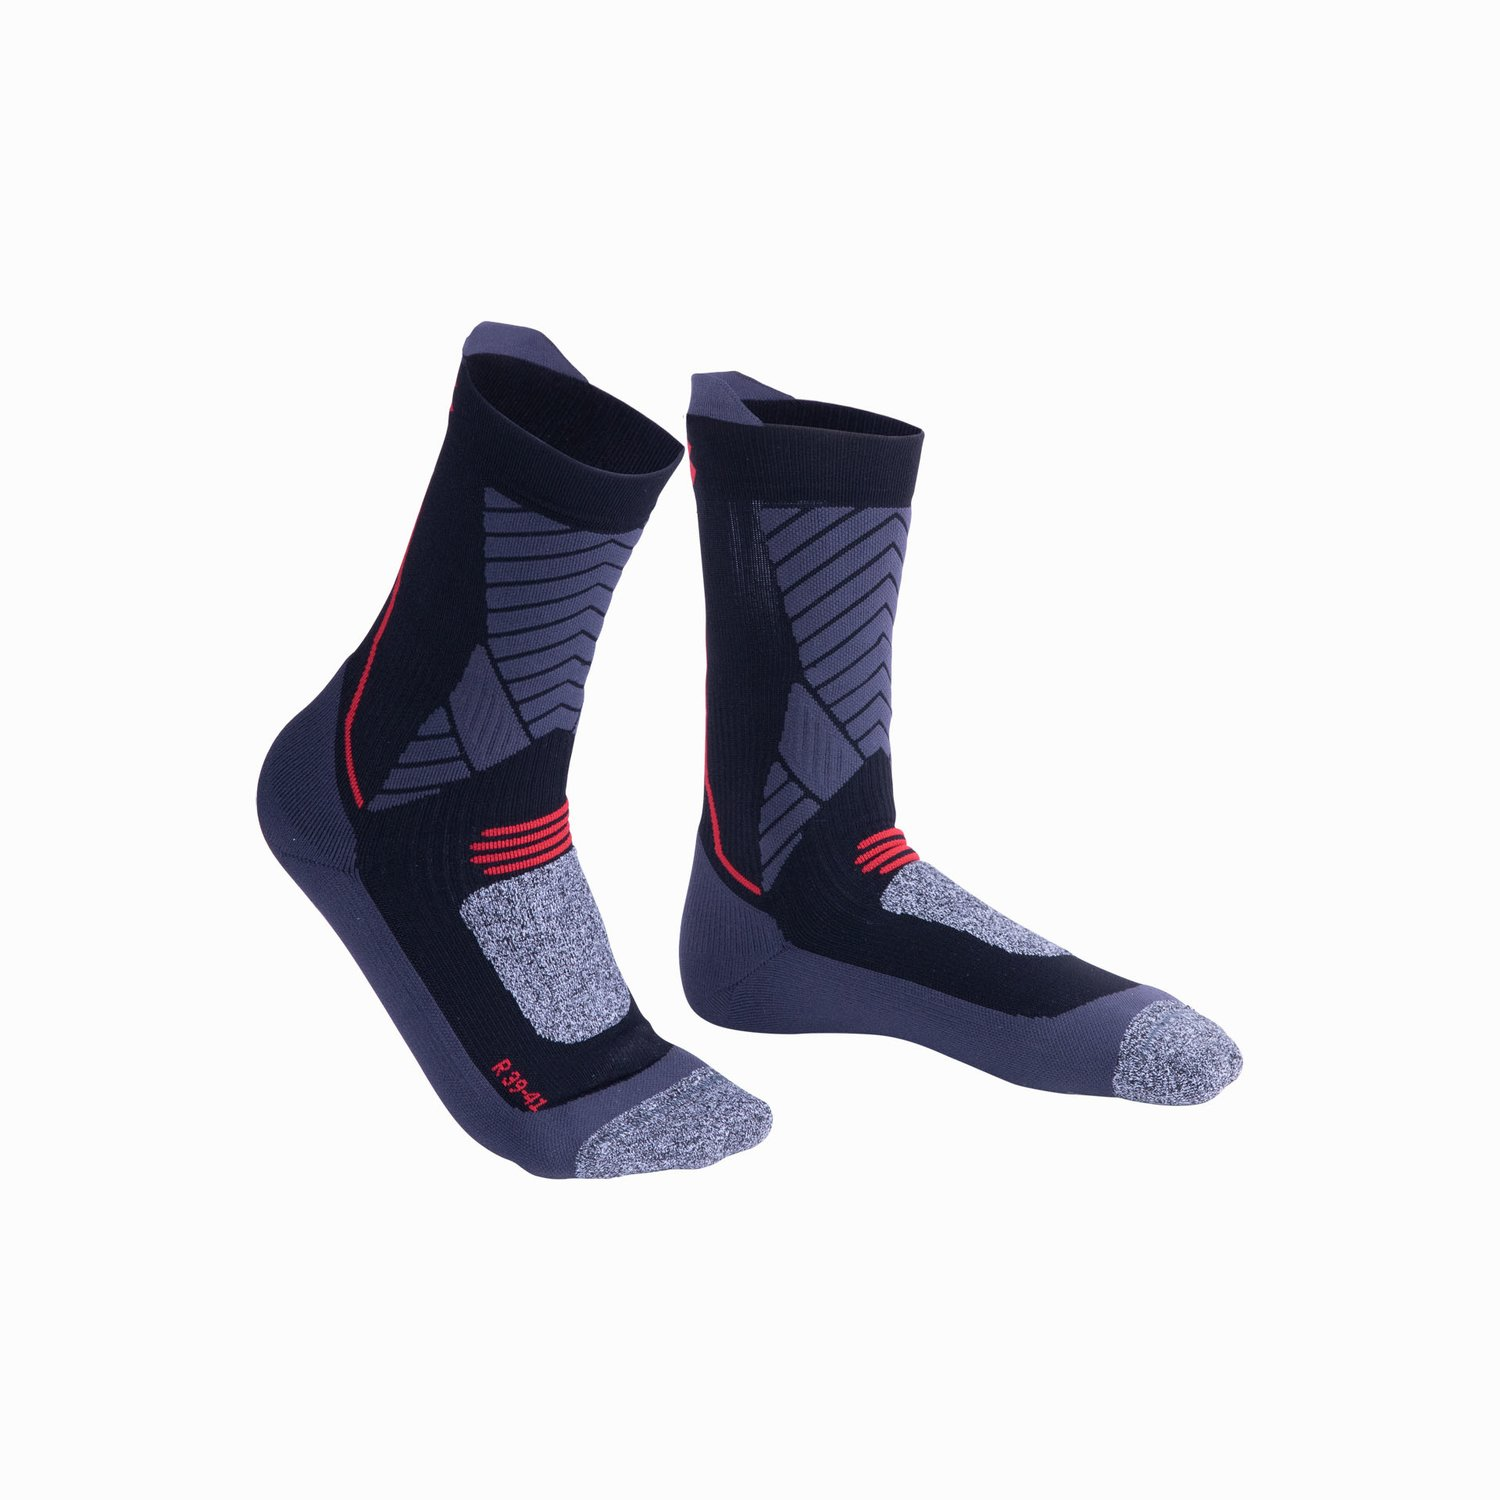 WIN-D HEAT ANKLE SOCKS - Black